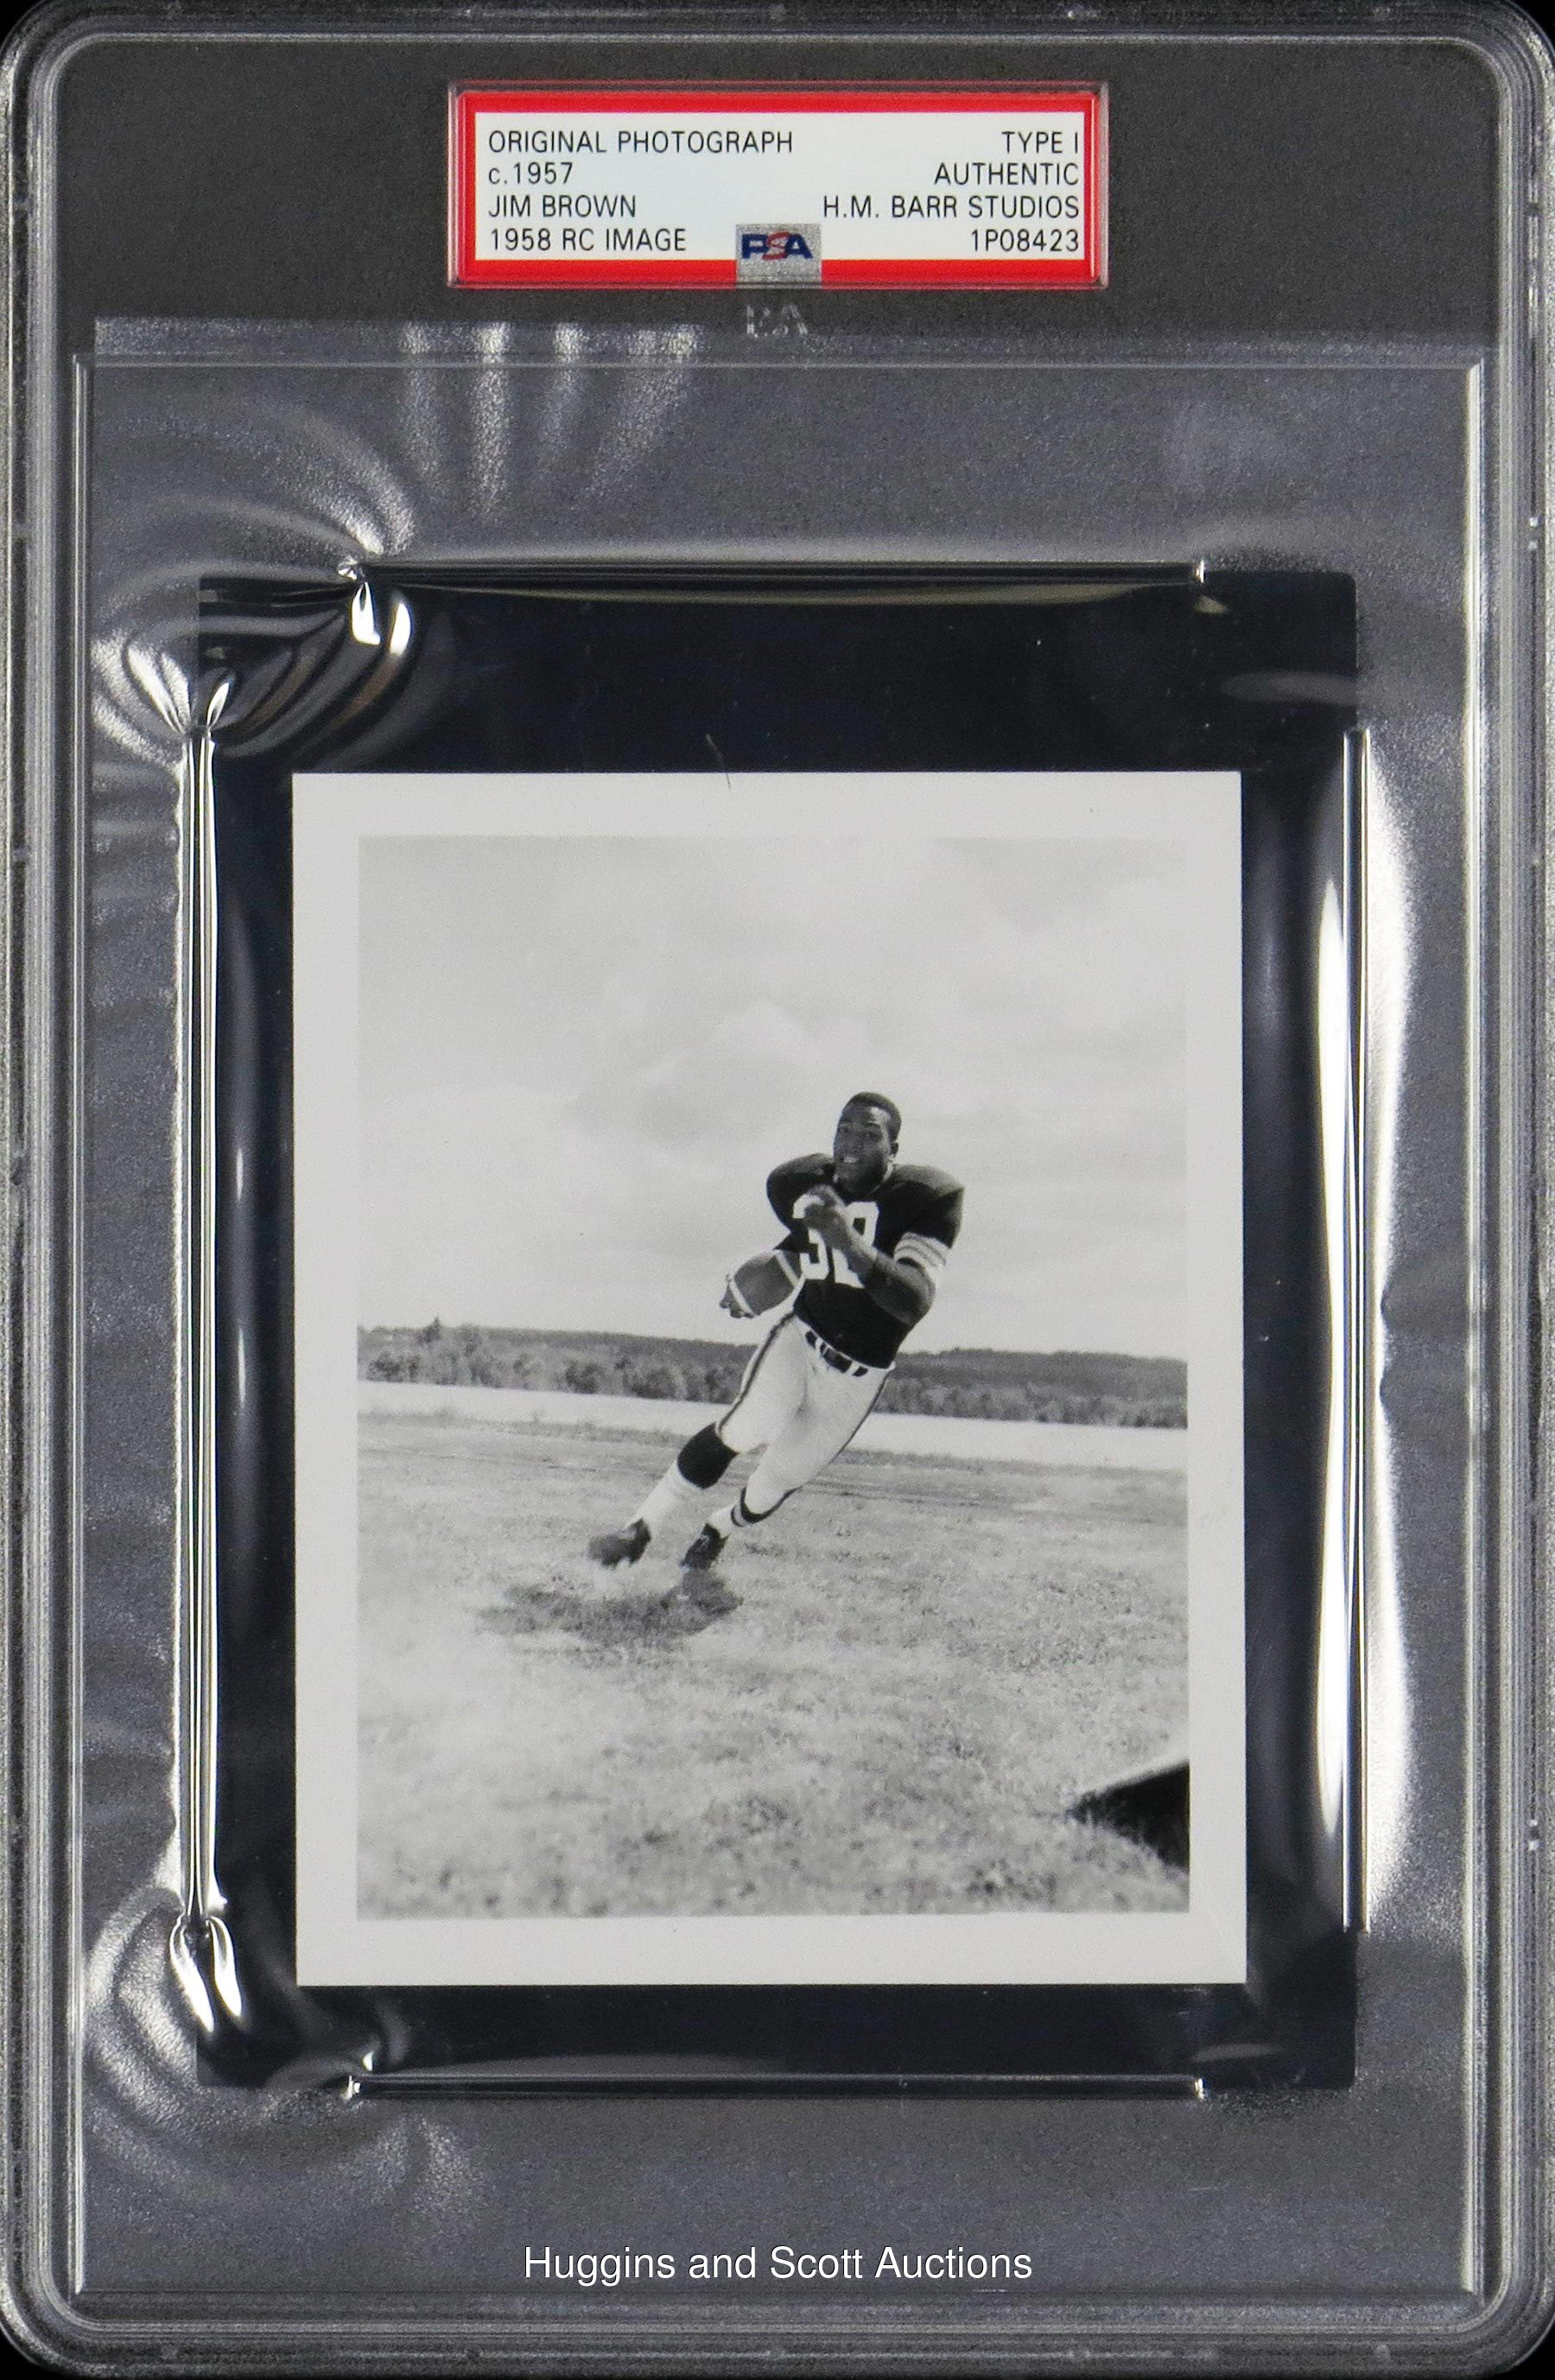 Jim Brown 1957 Contact Proof Original Photo By Henry Barr